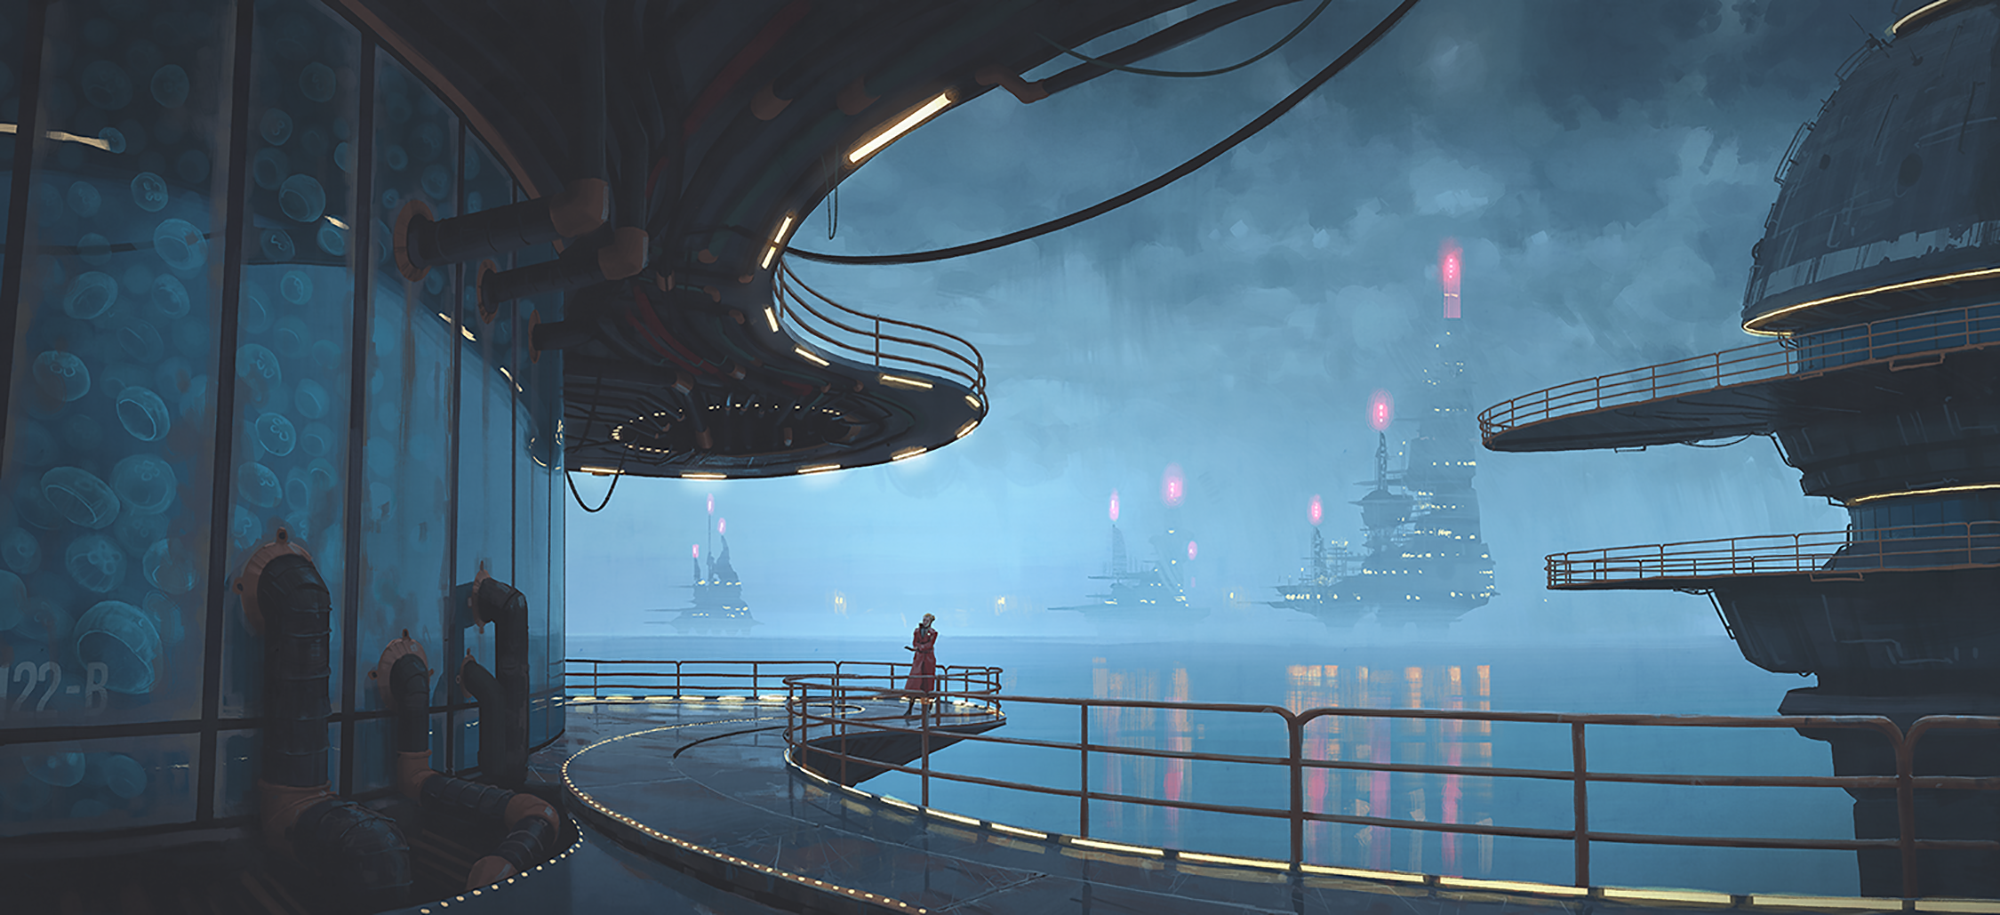 Fish Inc.: Imagine if the ocean became a jellyfish protein factory. Courtesy of Simon Stålenhag.